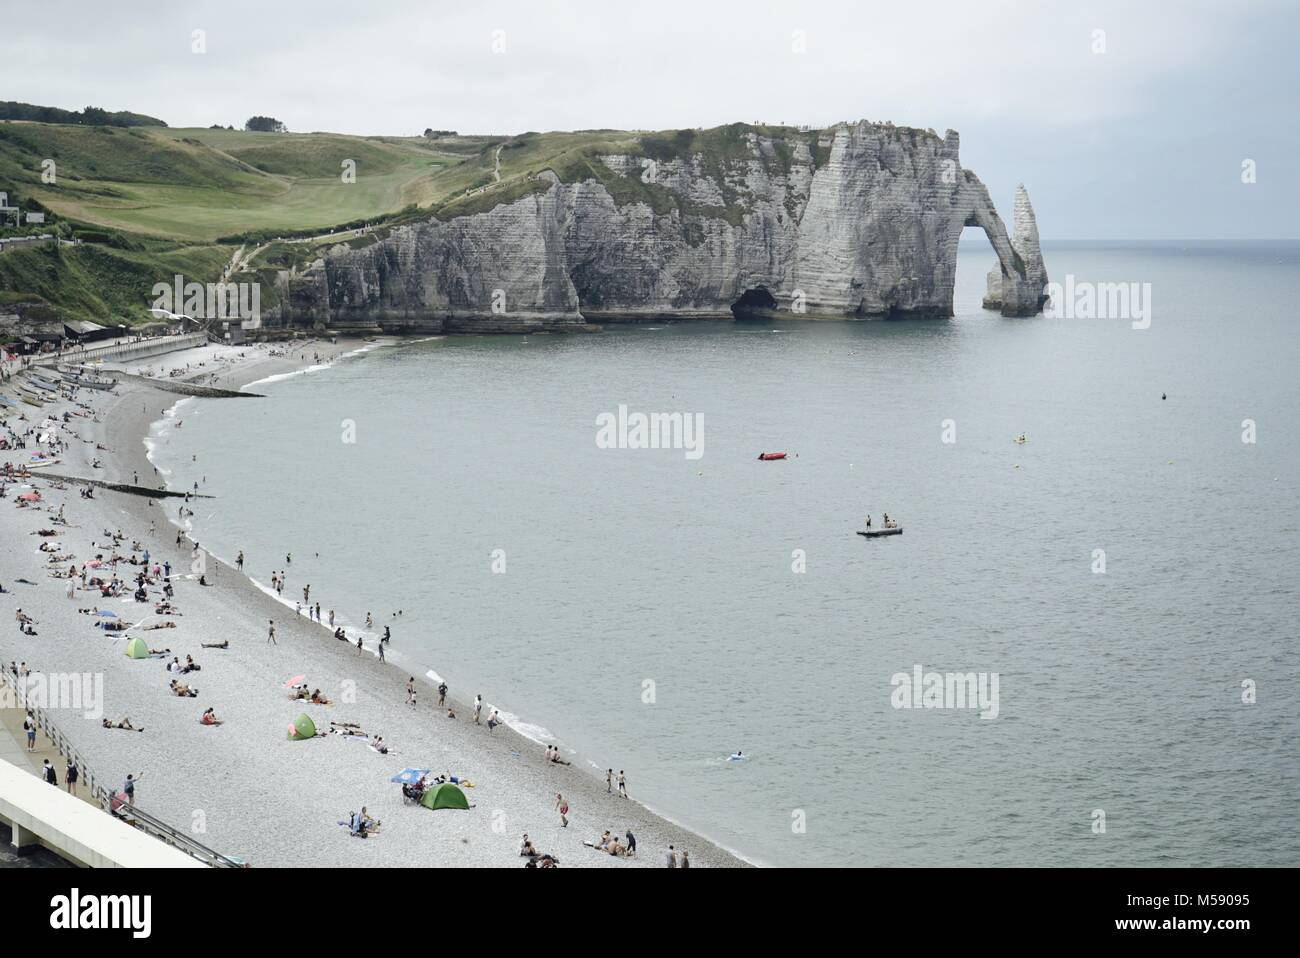 Etretat beach, with its famous chalk cliff, arch and needle in the background - Stock Image